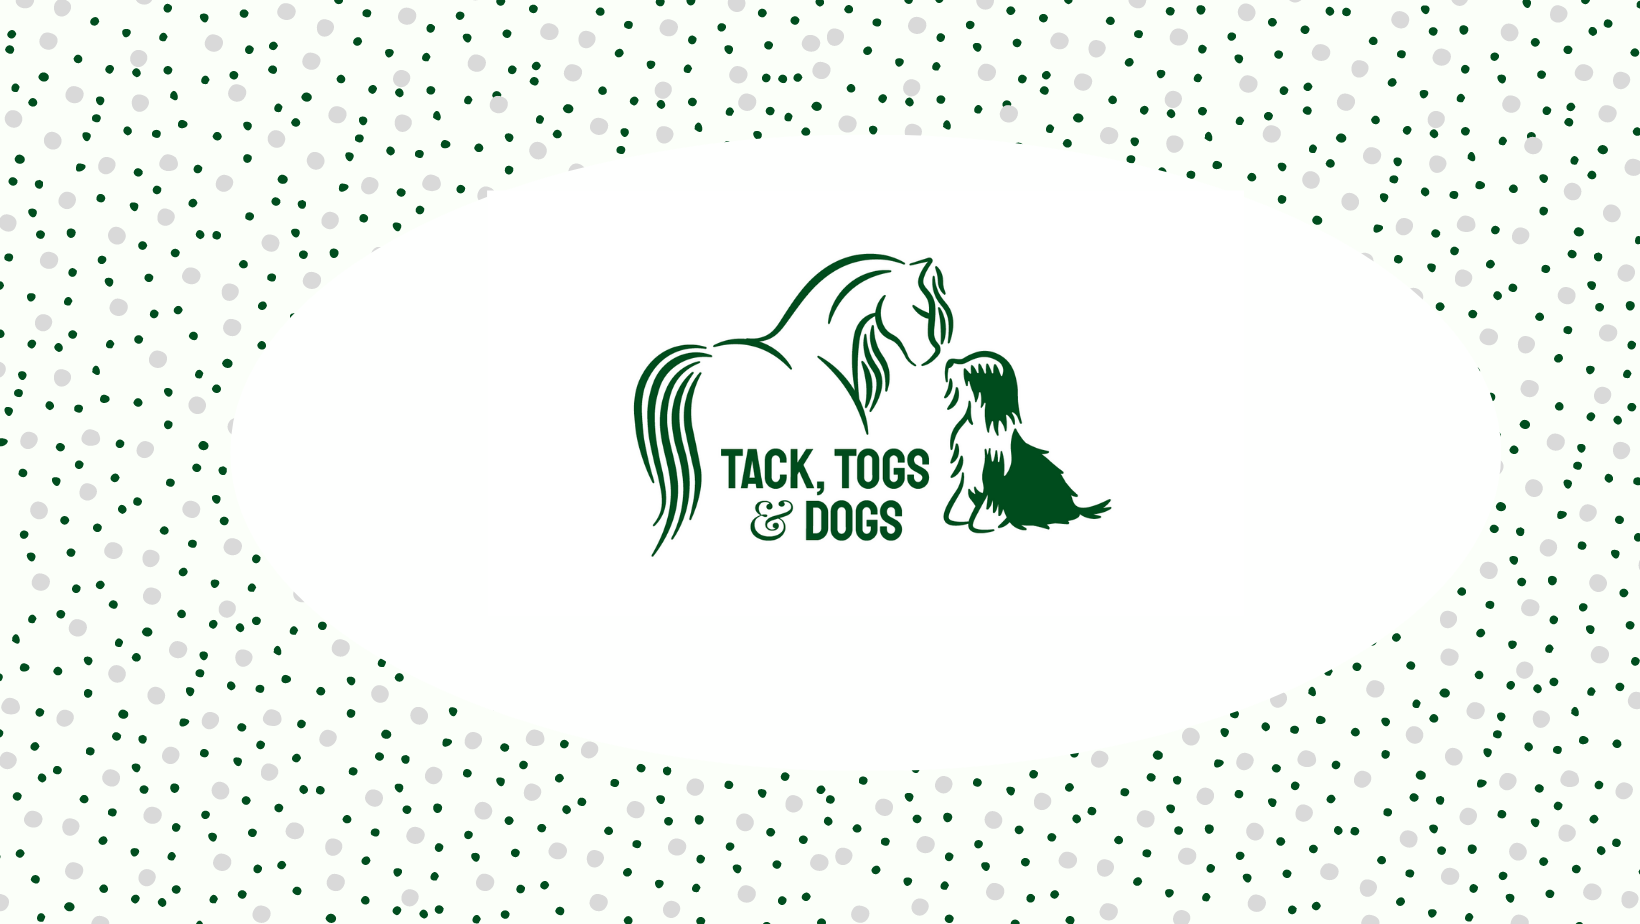 Tack Tos & DOgs Facebook Cover